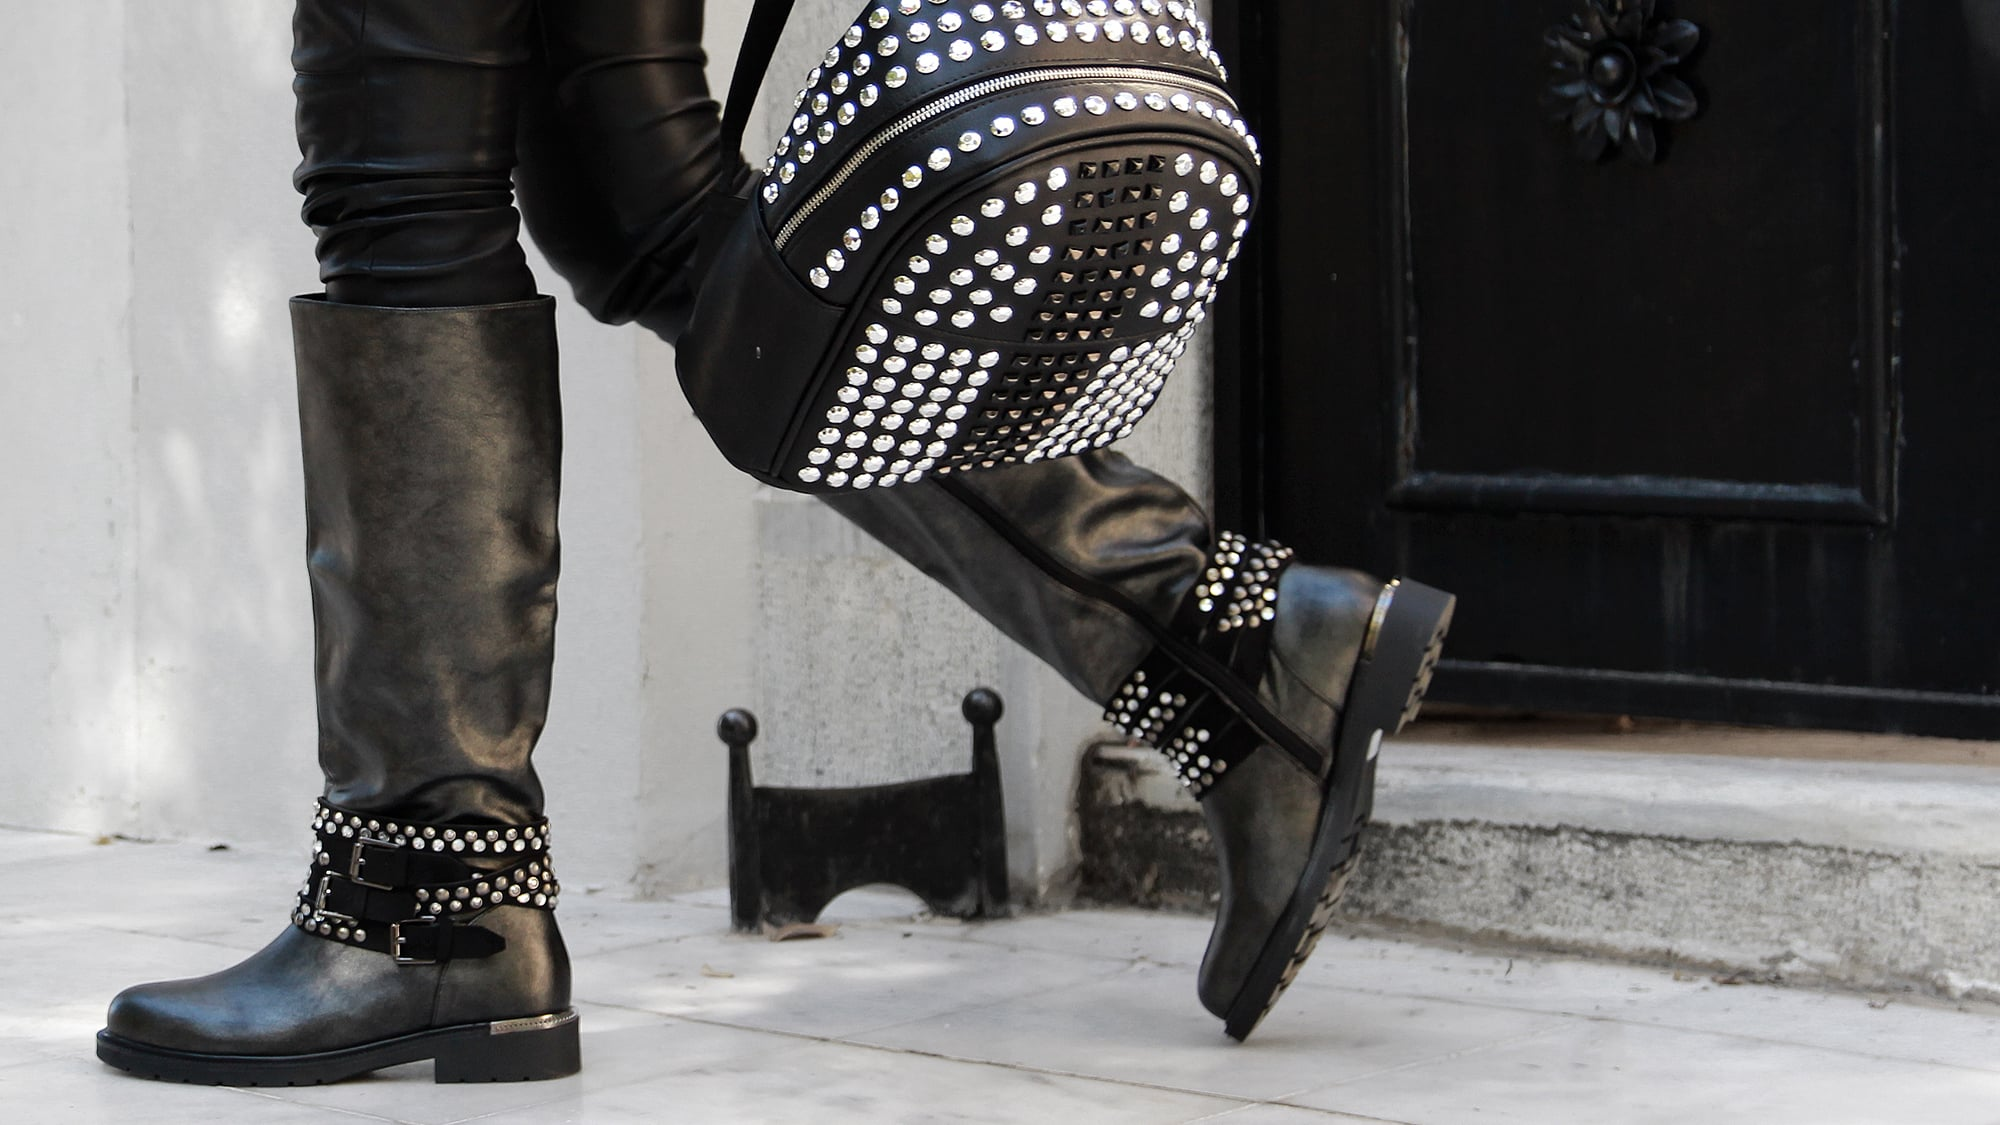 Bring Out Your Rocker Chic With Biker Boots